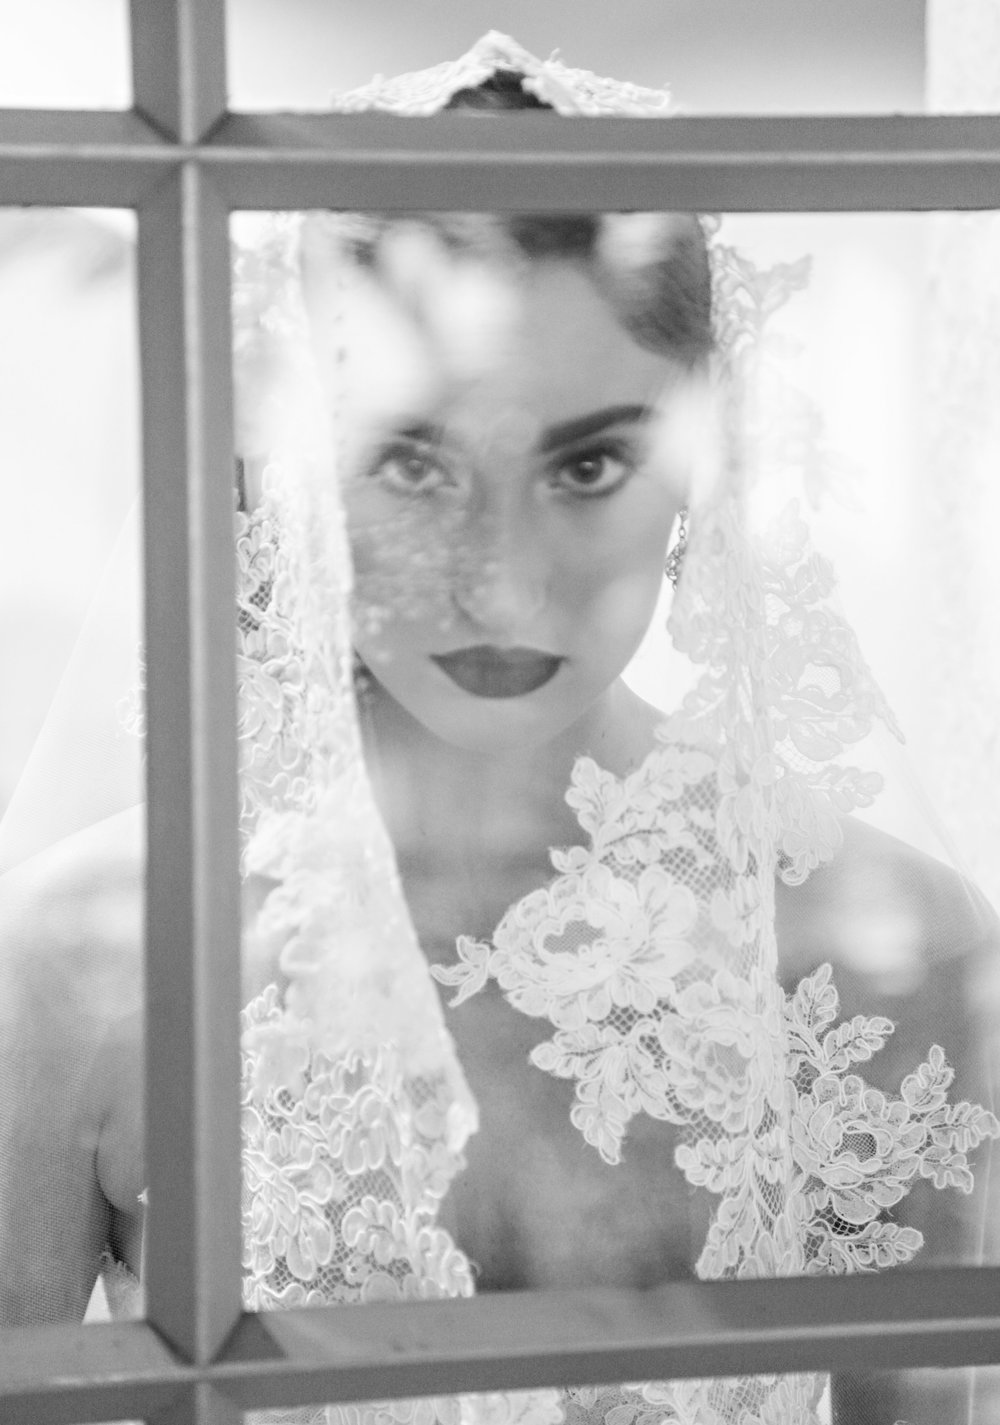 Window Pane Bridal Portrait.jpg